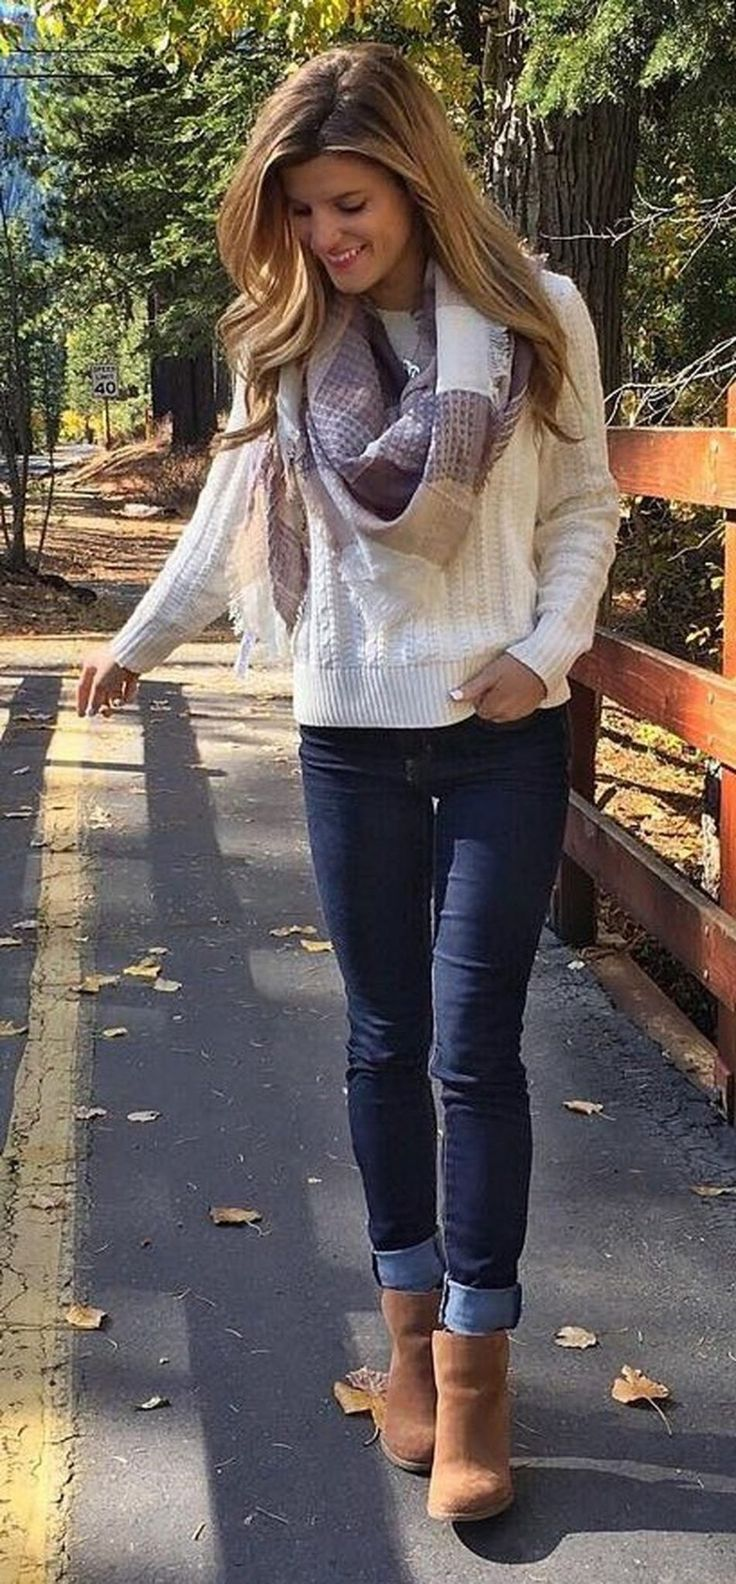 Best Fashionable Scarves for Winter Outfits 2017 #winterfashion2017casual #casualworkoutfit